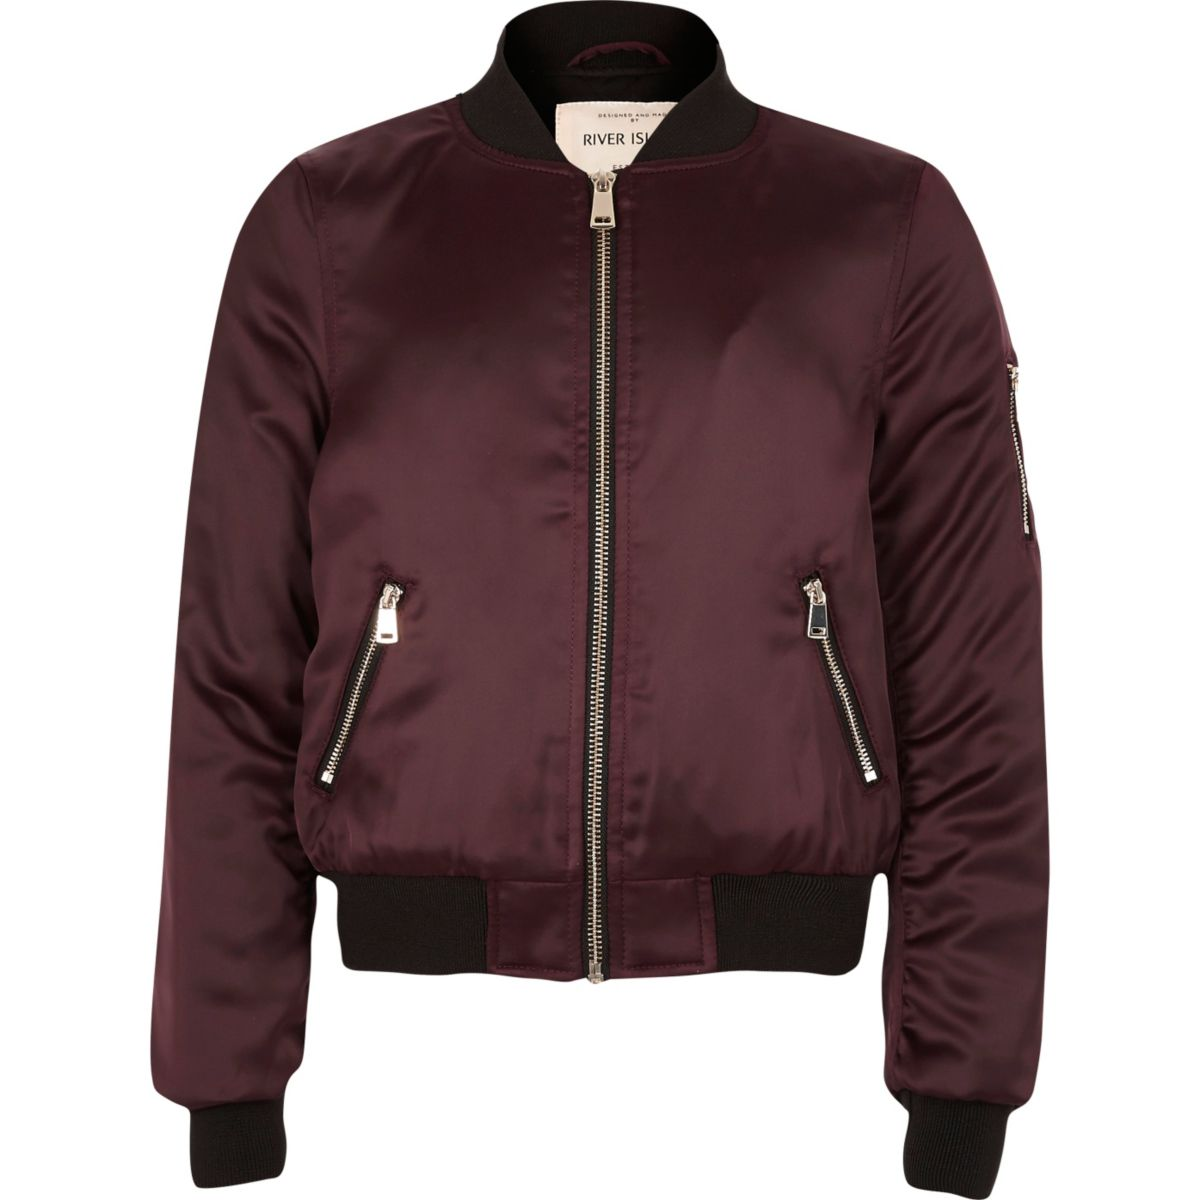 Product Description Let her own her cold weather look with this cool bomber jacket.